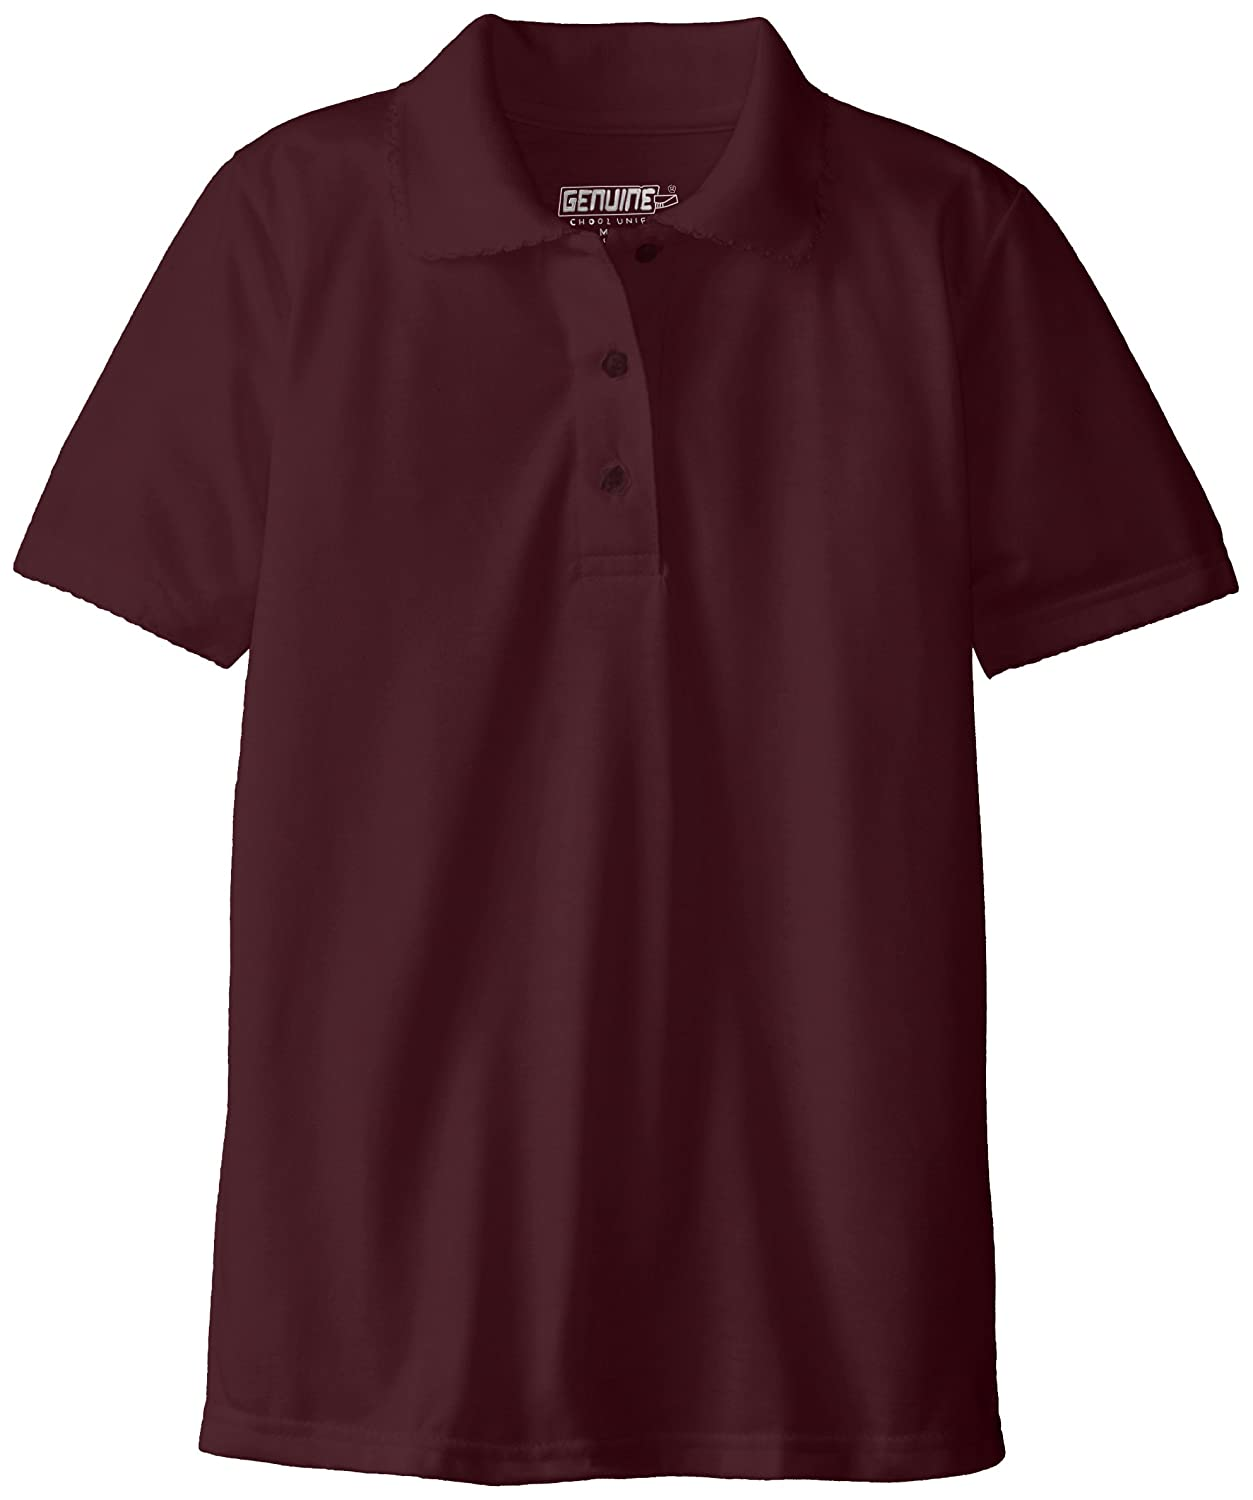 Amazon Genuine Girls Polo Shirt More Styles Available Clothing